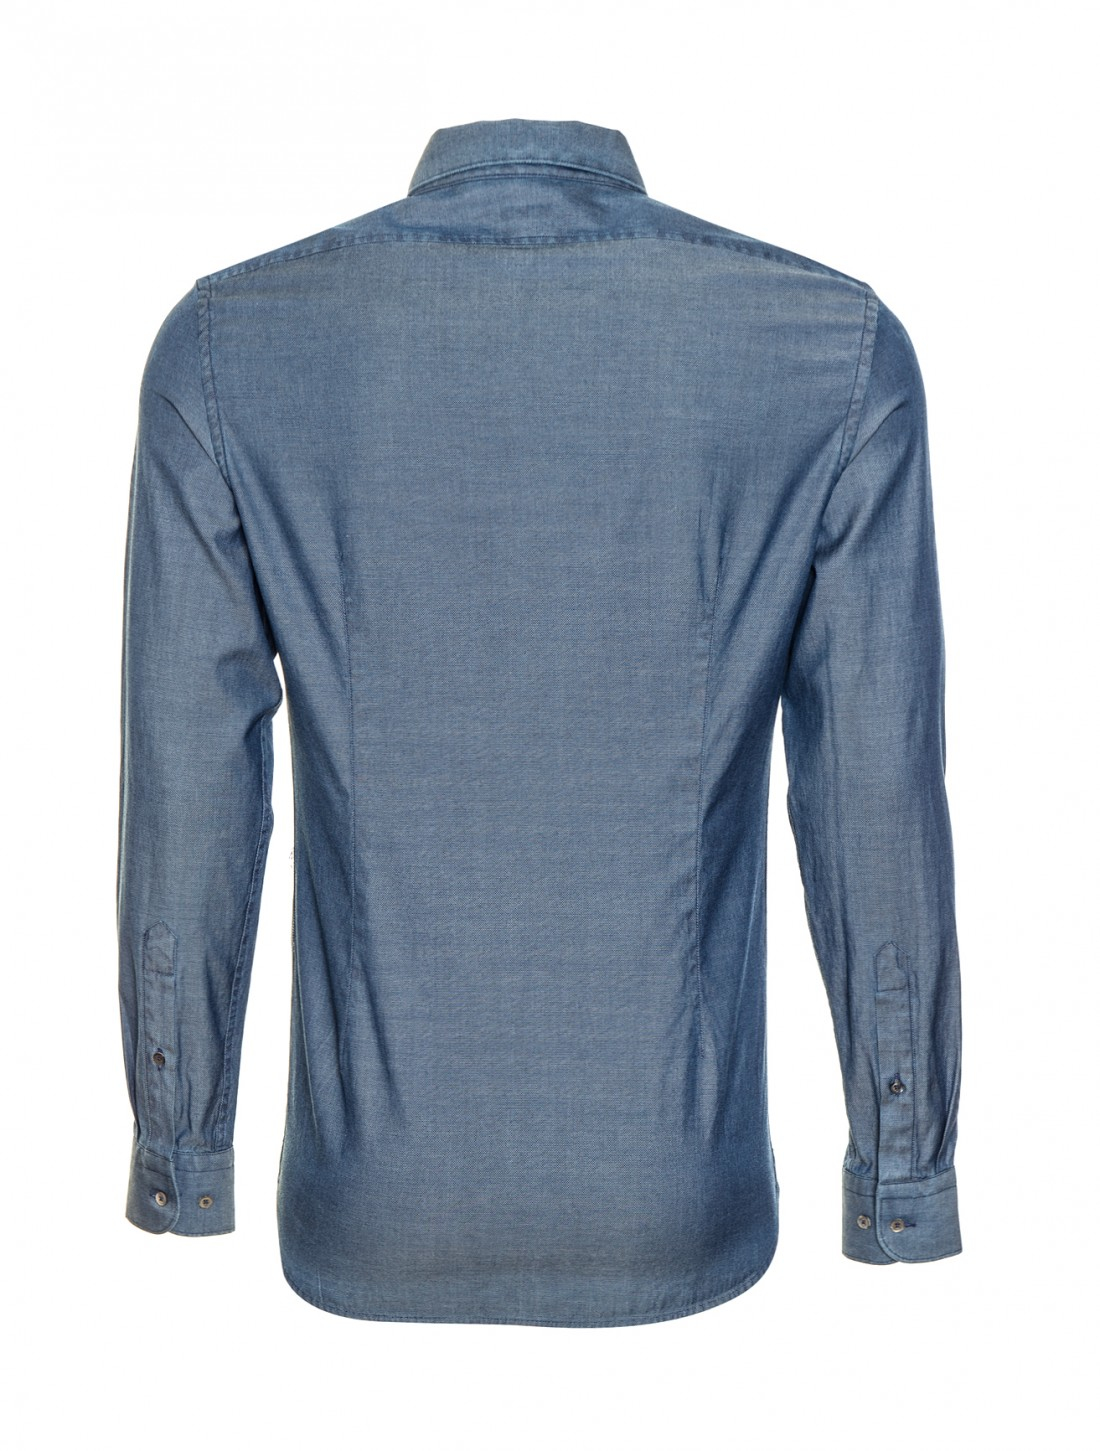 Dani california oxford chambray shirt in blue for Chambray jeans